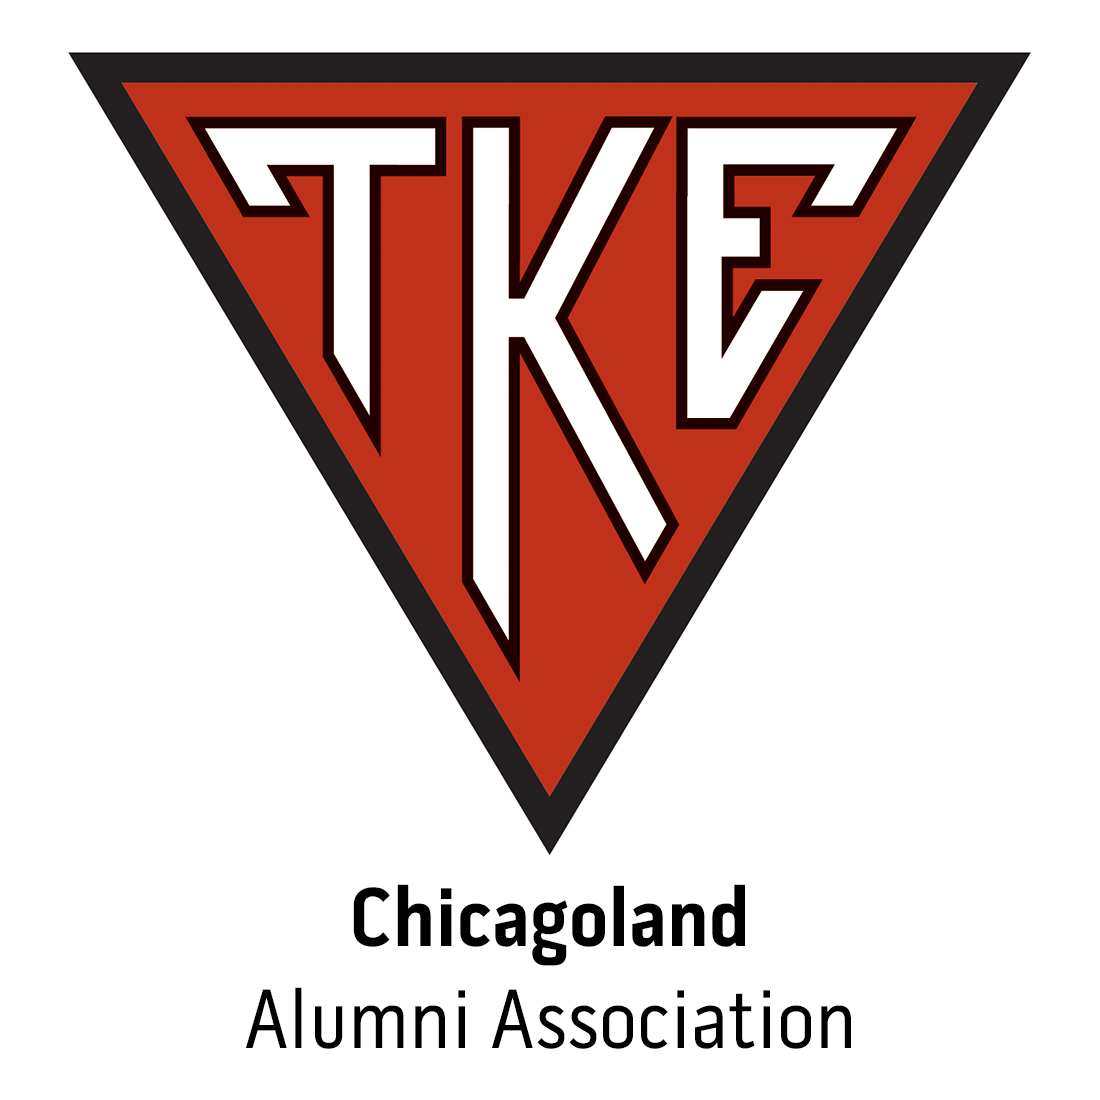 Chicagoland Alumni Association at Greater Chicago Area Illinois